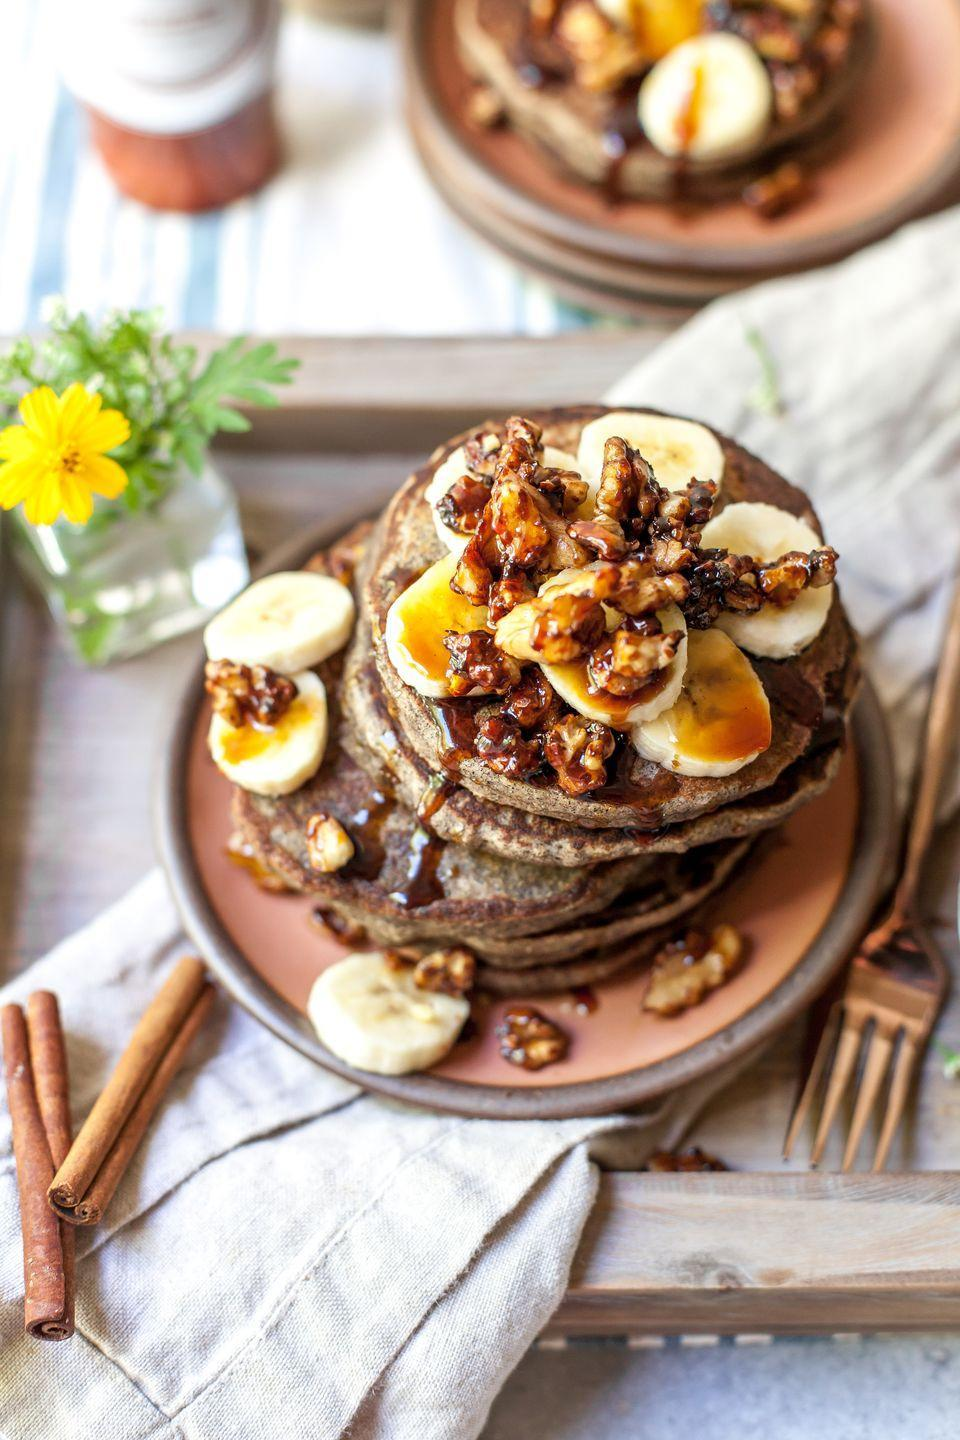 """<p>For a lighter take on pancakes, try swapping in buckwheat flour for a gluten-free breakfast that's also free of refined sugars. Yogurt and tahini help enhance the creamy profile of the banana in this pancake.</p><p><a href=""""https://dishingouthealth.com/buckwheat-banana-bread-pancakes/"""" rel=""""nofollow noopener"""" target=""""_blank"""" data-ylk=""""slk:Get the recipe from Dishing Out Health »"""" class=""""link rapid-noclick-resp""""><em>Get the recipe from Dishing Out Health »</em></a></p>"""